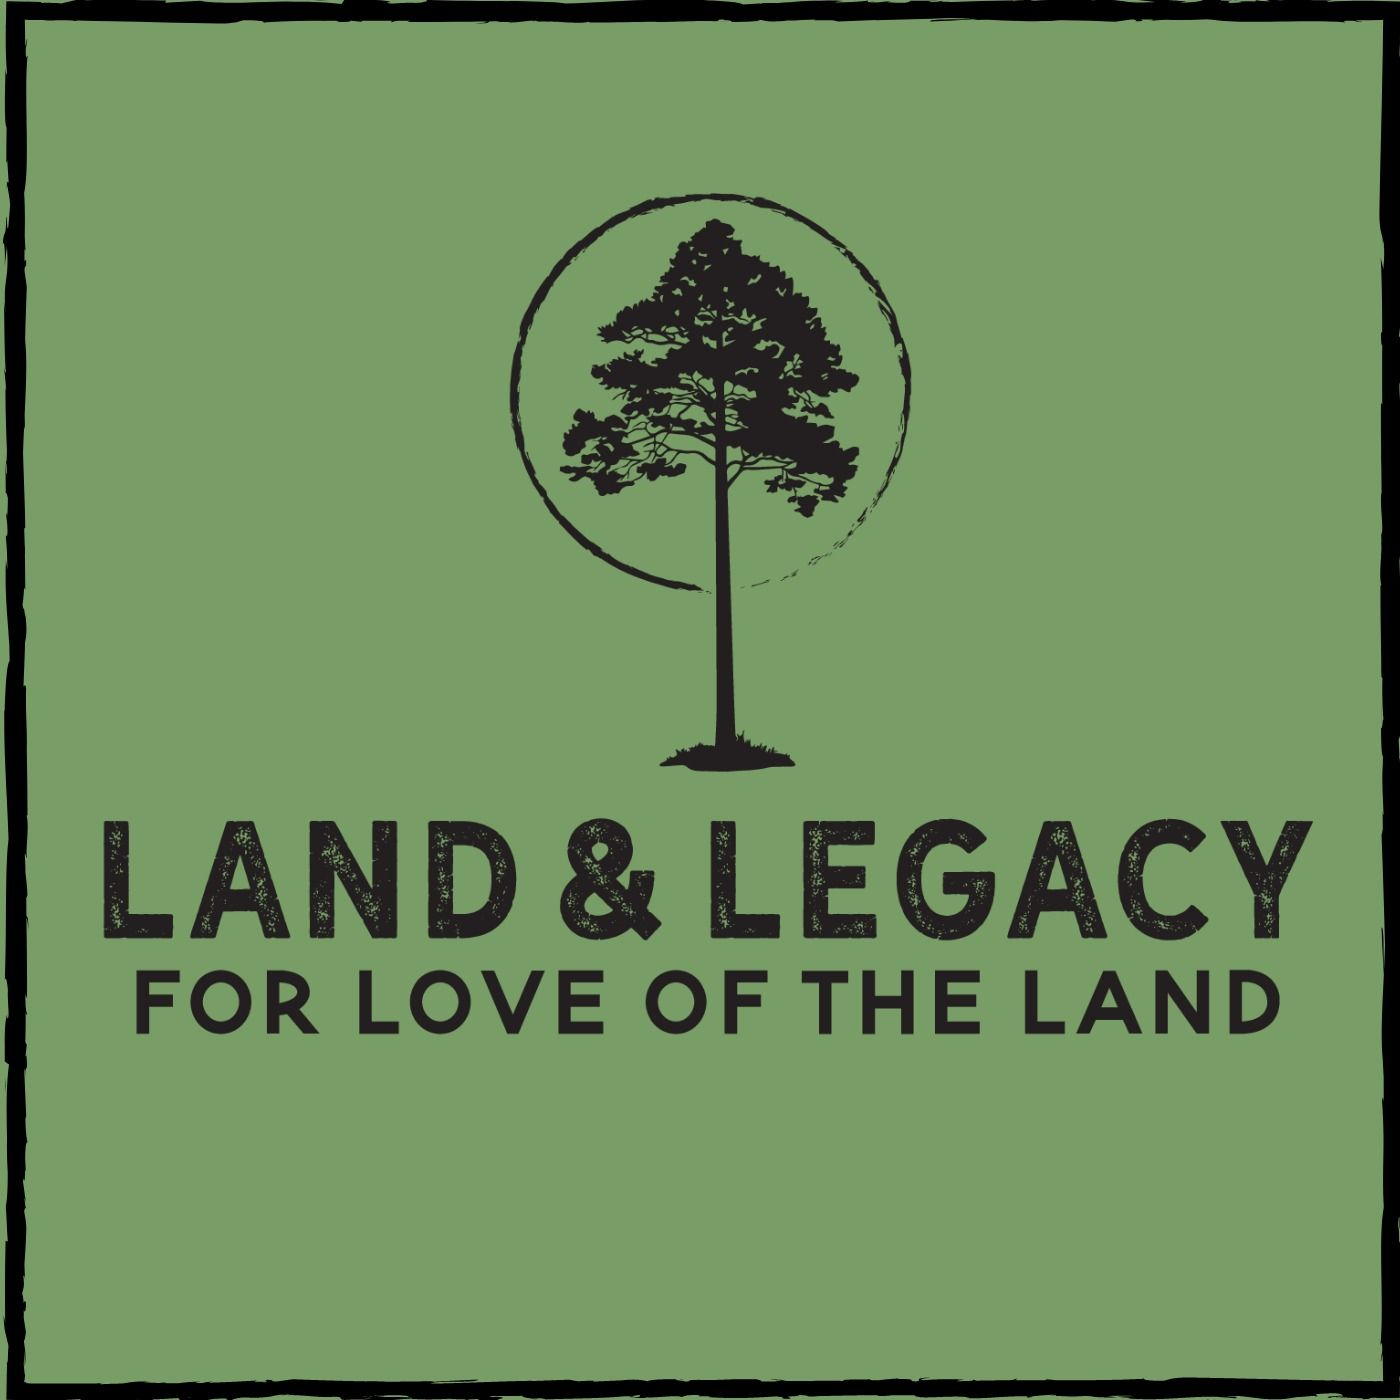 Land & Legacy - Timber Management in the North Woods